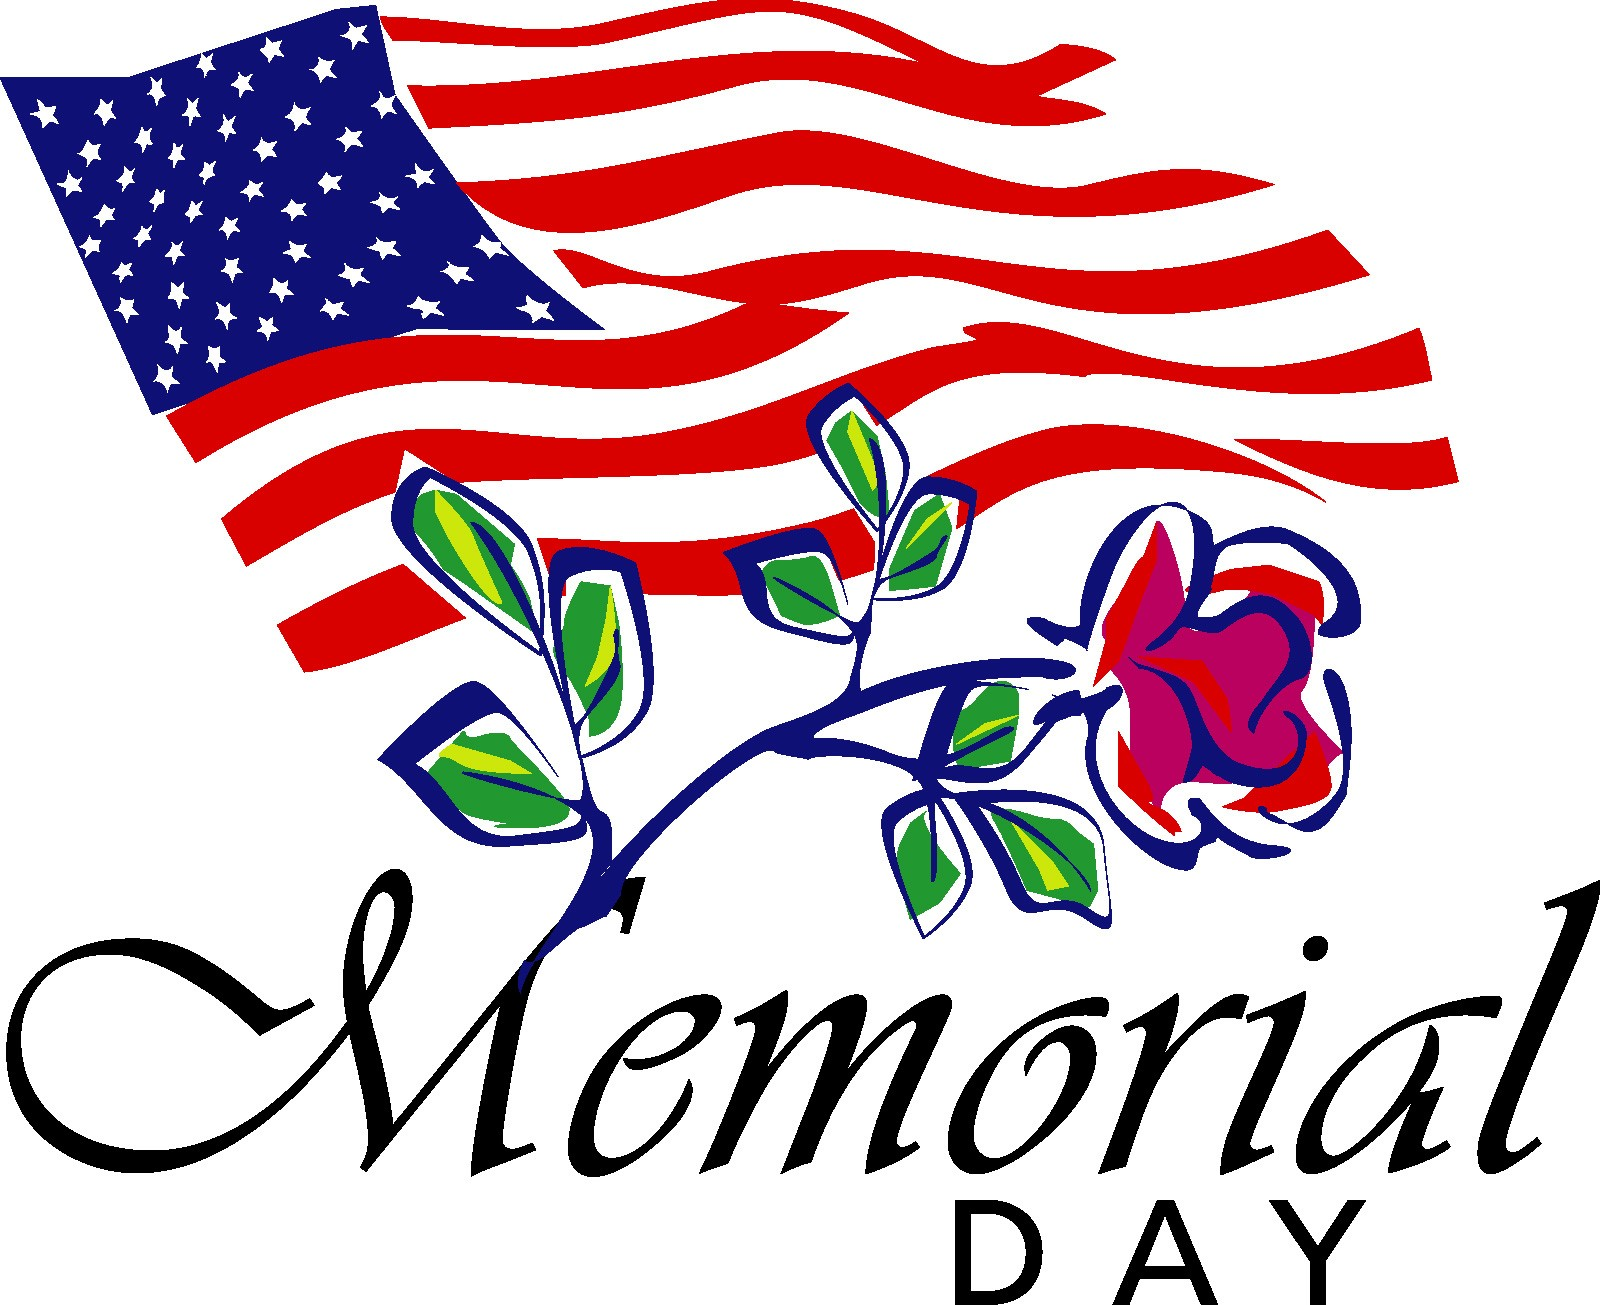 memorial day clipart clipart panda free clipart images rh clipartpanda com memorial day clipart for church bulletins memorial day clipart for kids